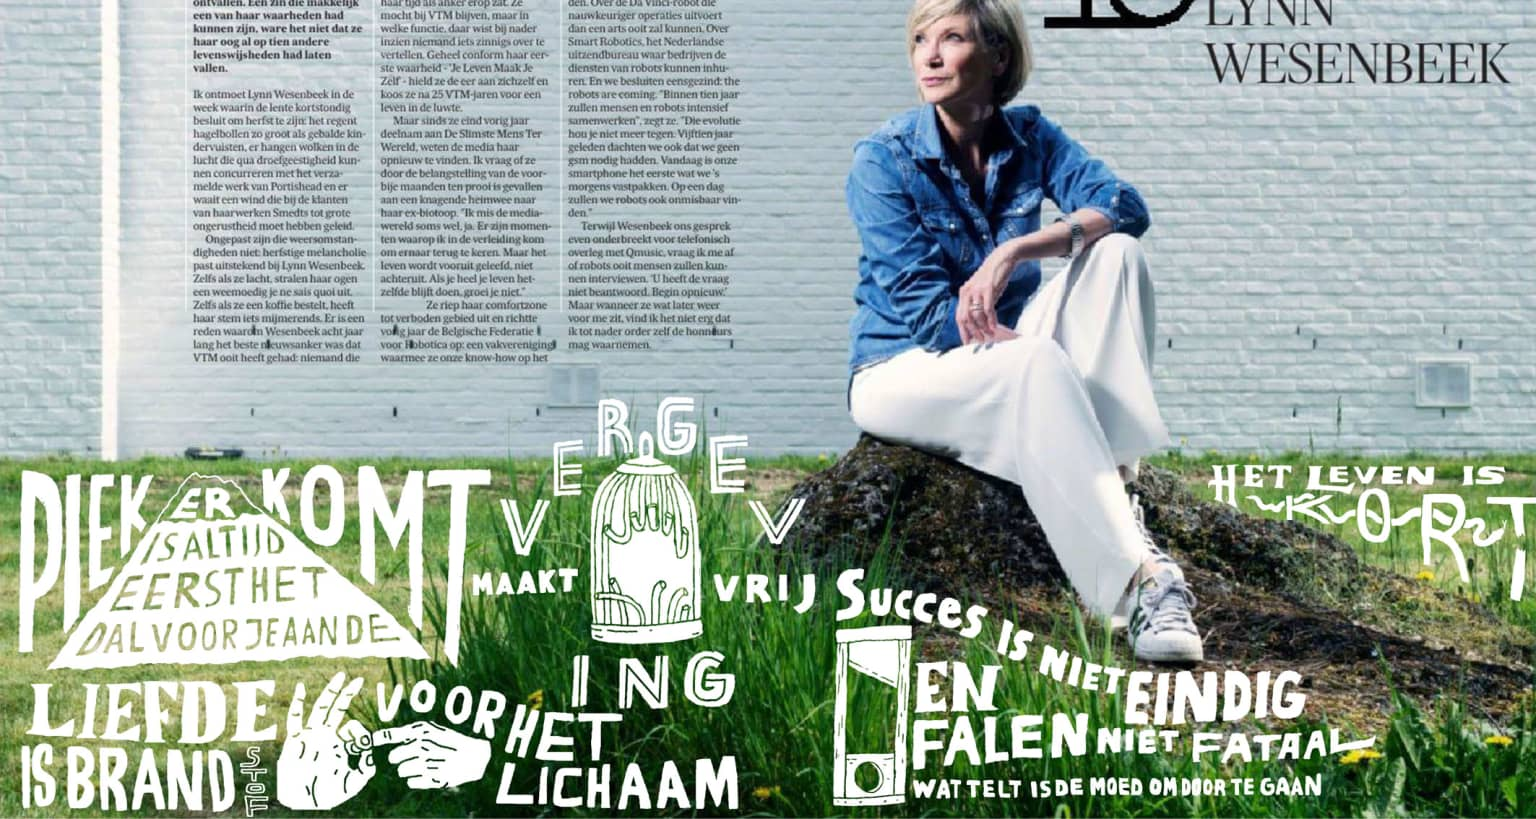 DM magazine (de morgen)